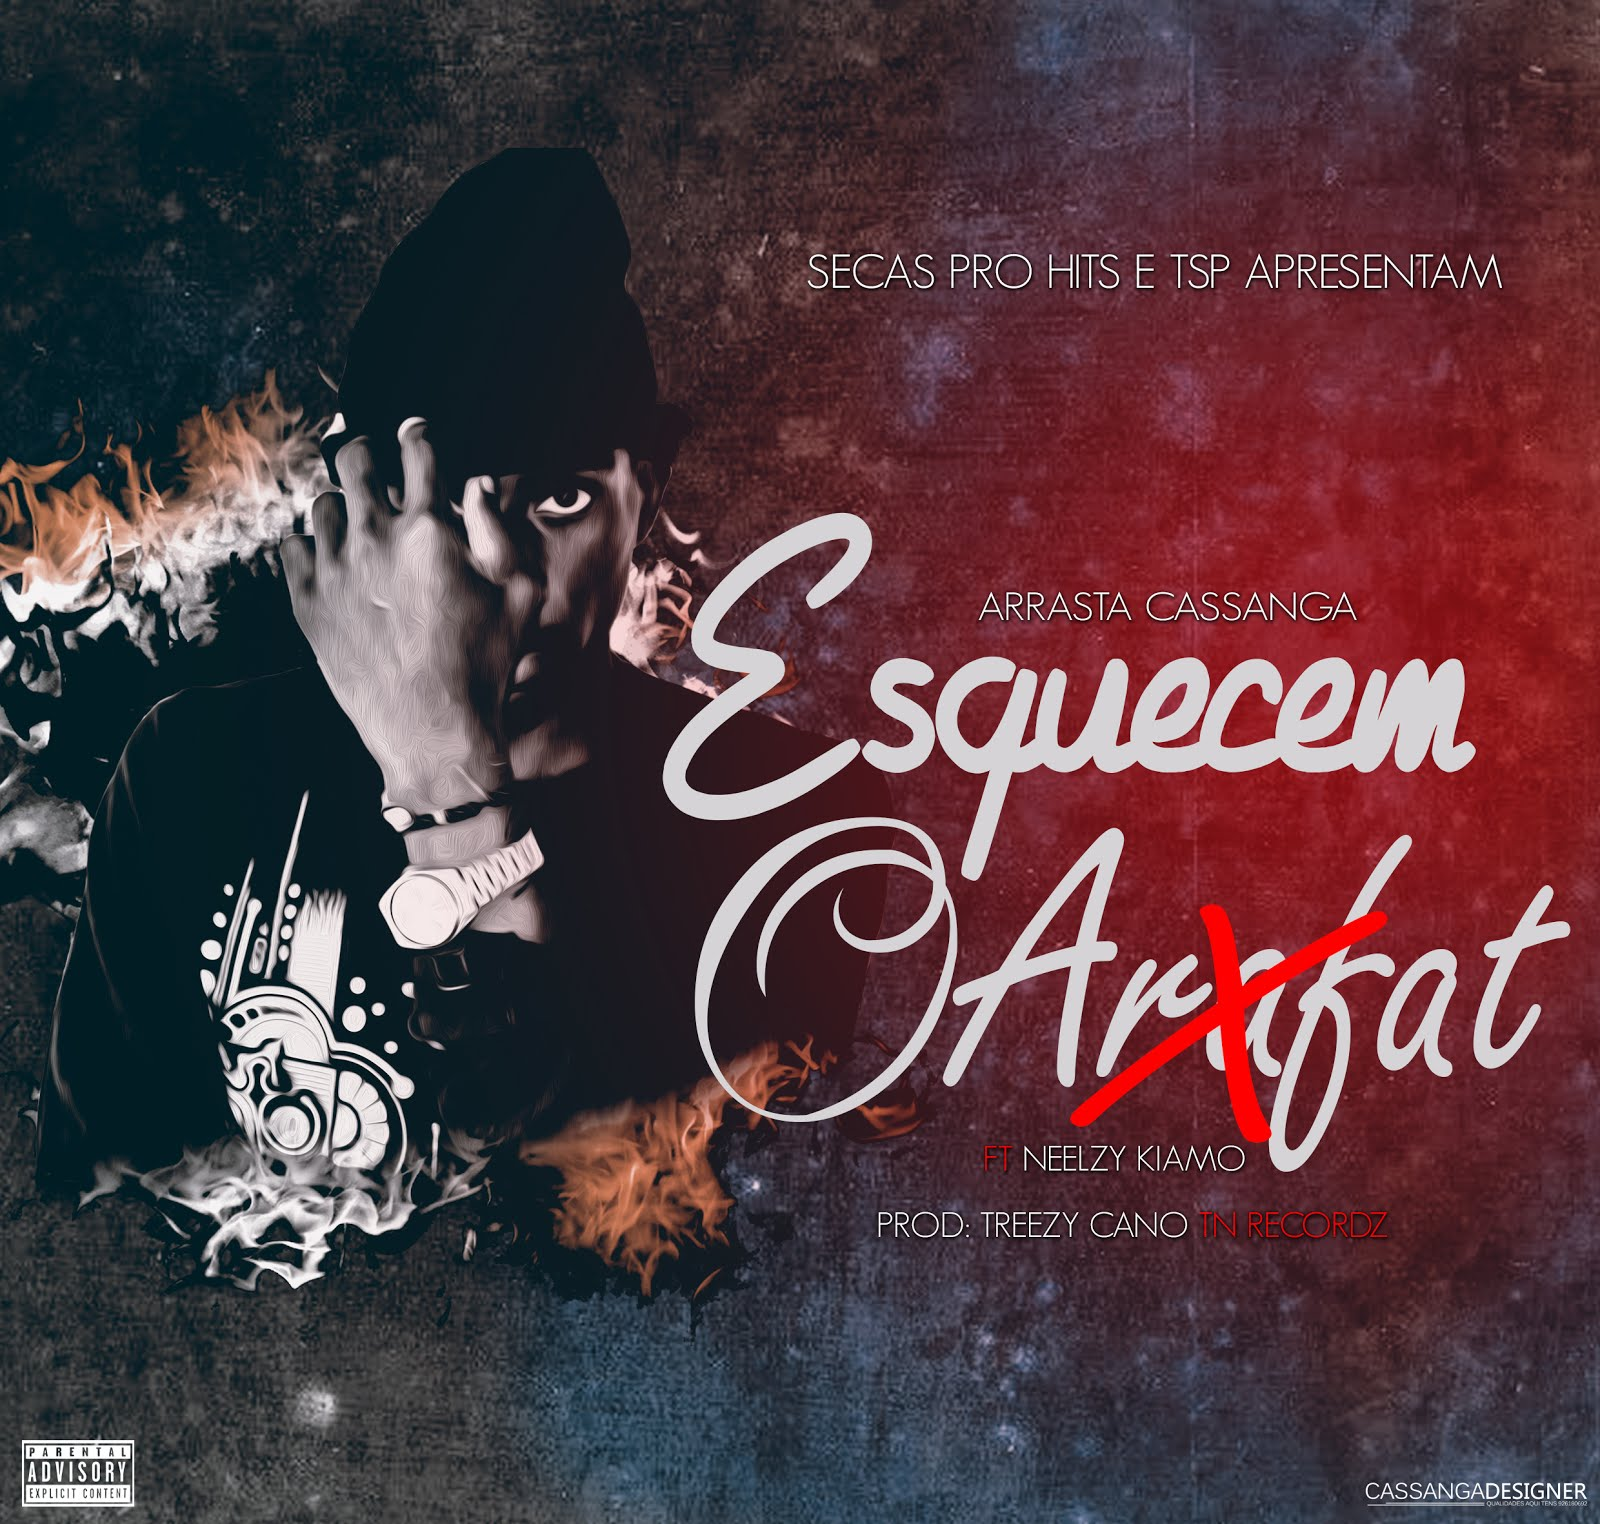 Arrasta Cassanga Feat. Neelzy Kiamo - Esquecem o Arafat (Rap) [Download]